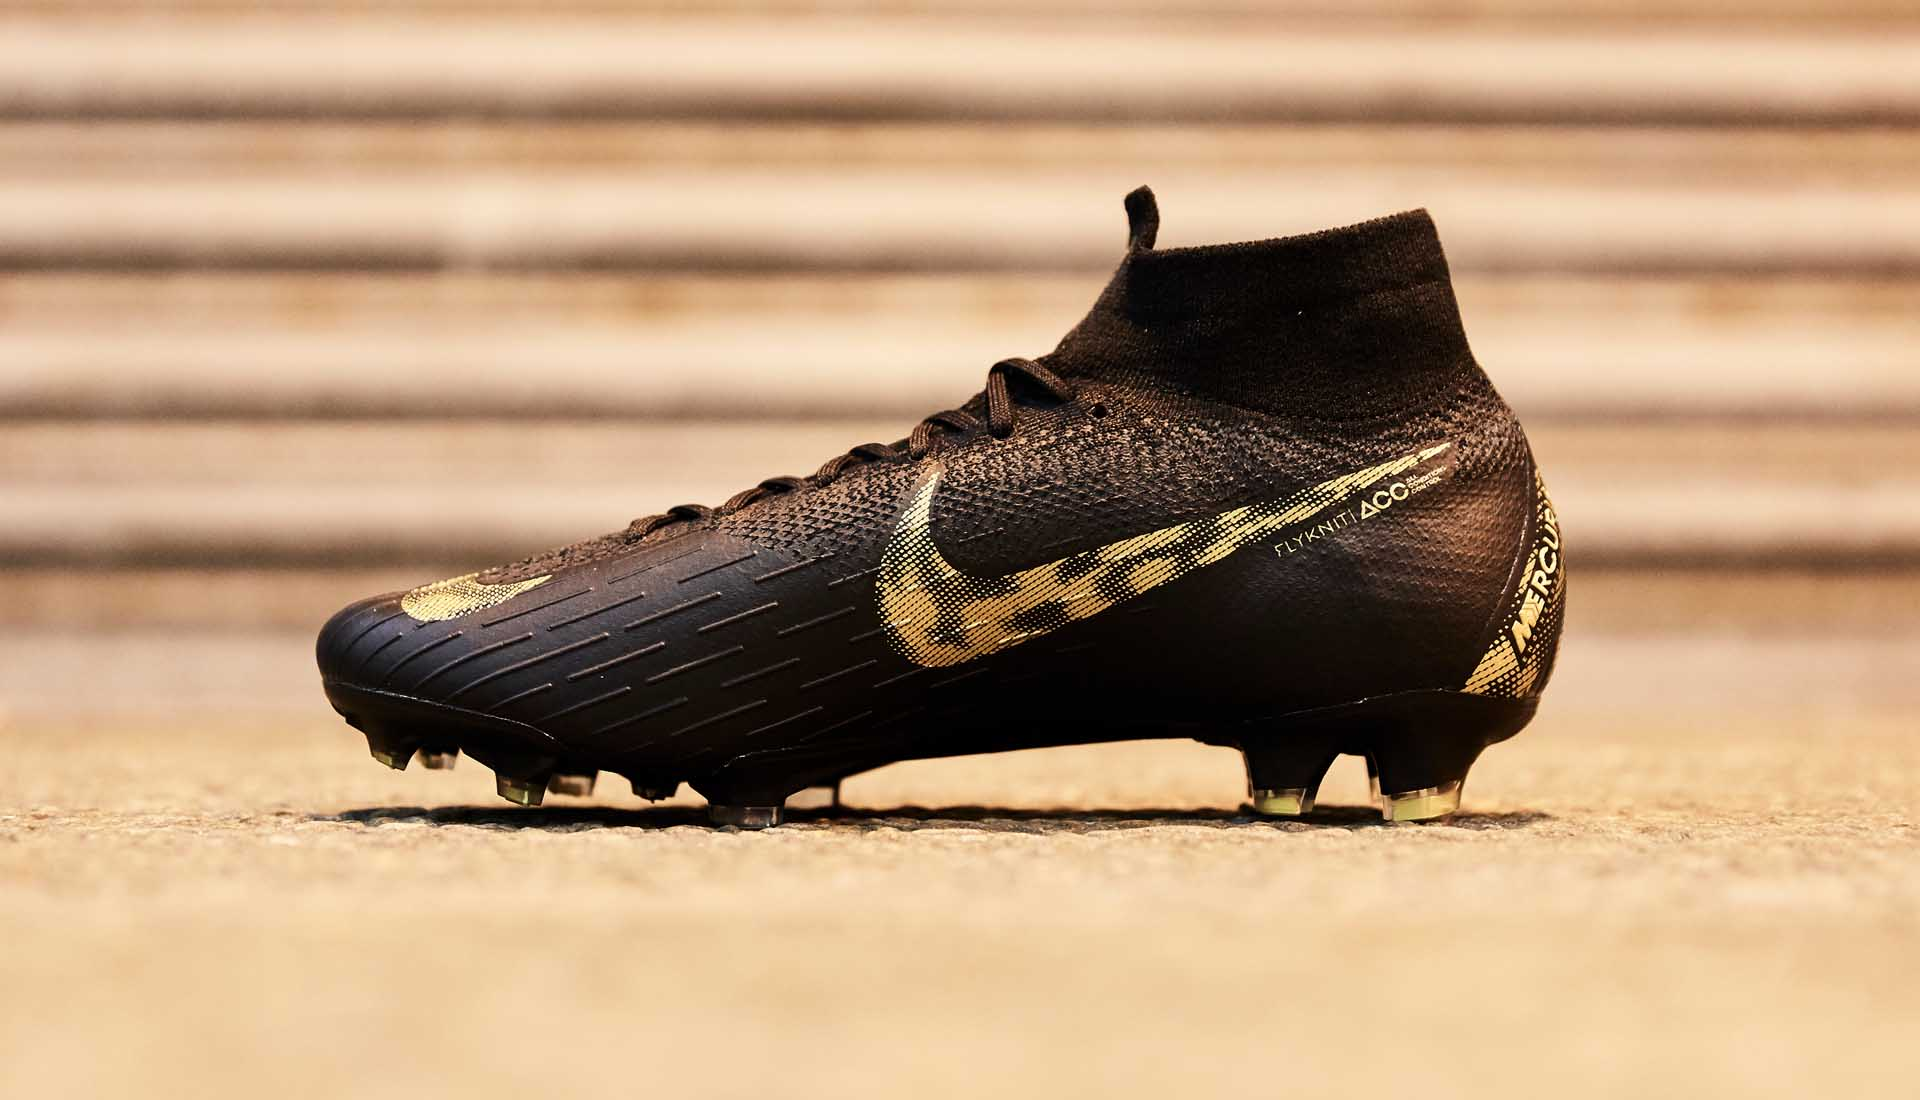 378e74306b53 The Best Boot Releases Of January 2019 - SoccerBible